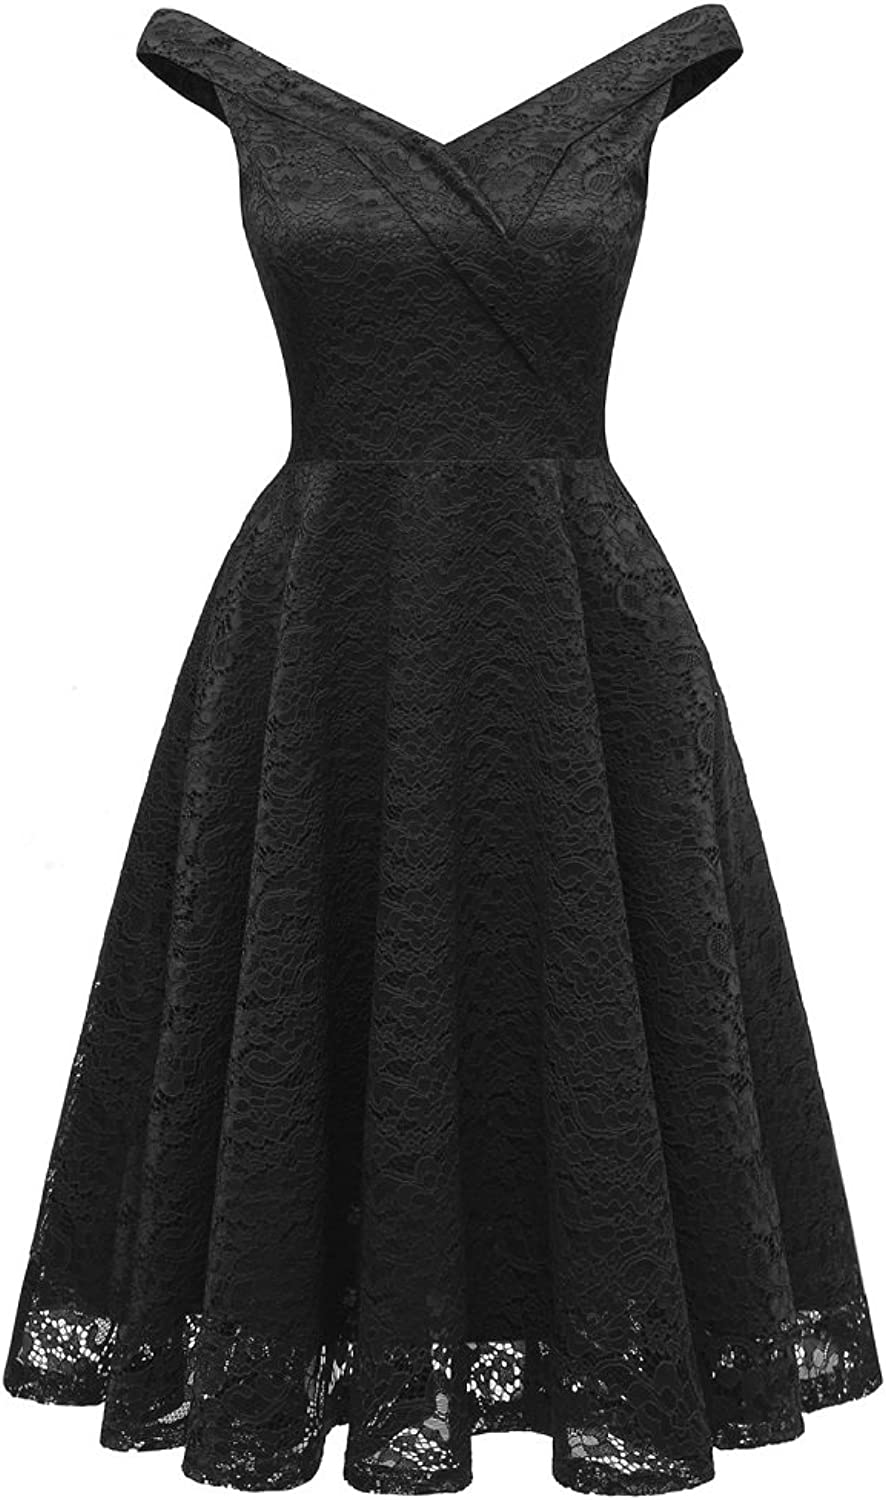 BILIKE Off Shoulder V Neck Vintage Swing Floral Lace Cocktail Party Dress